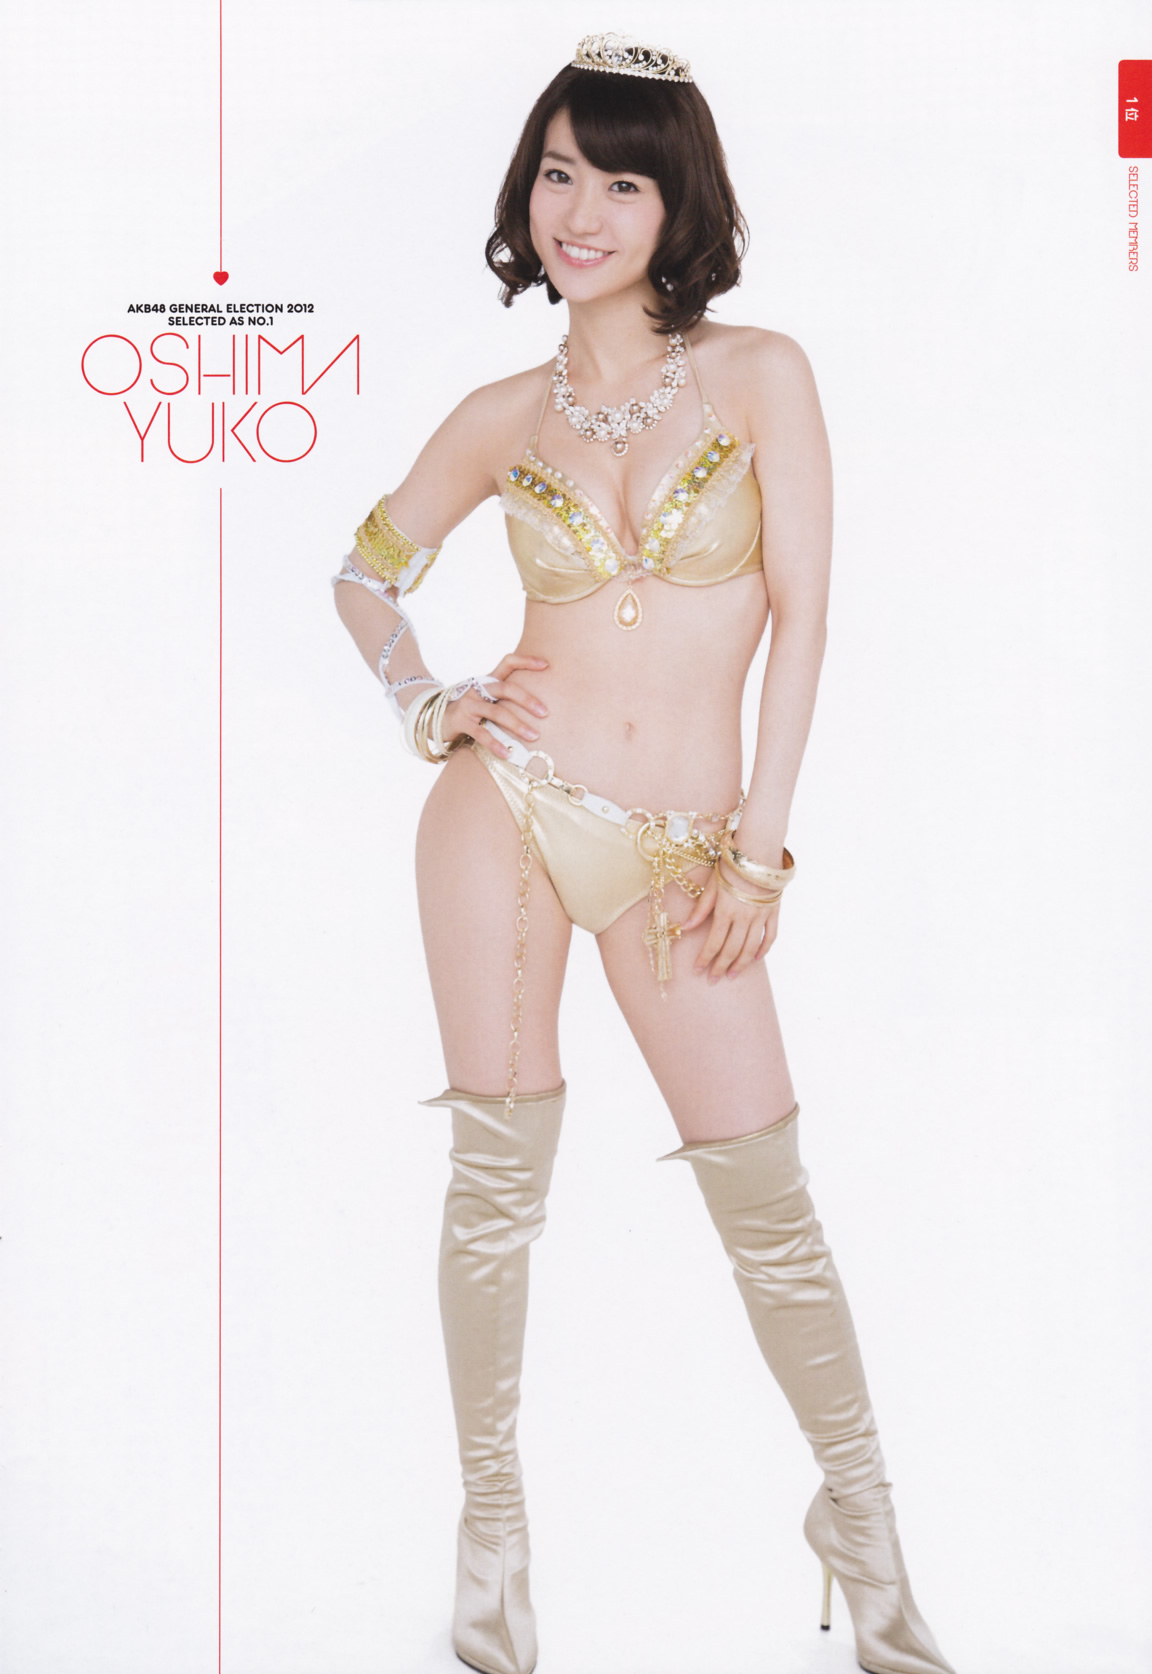 Yuko Oshima Android Iphone Wallpaper 37851 Asiachan